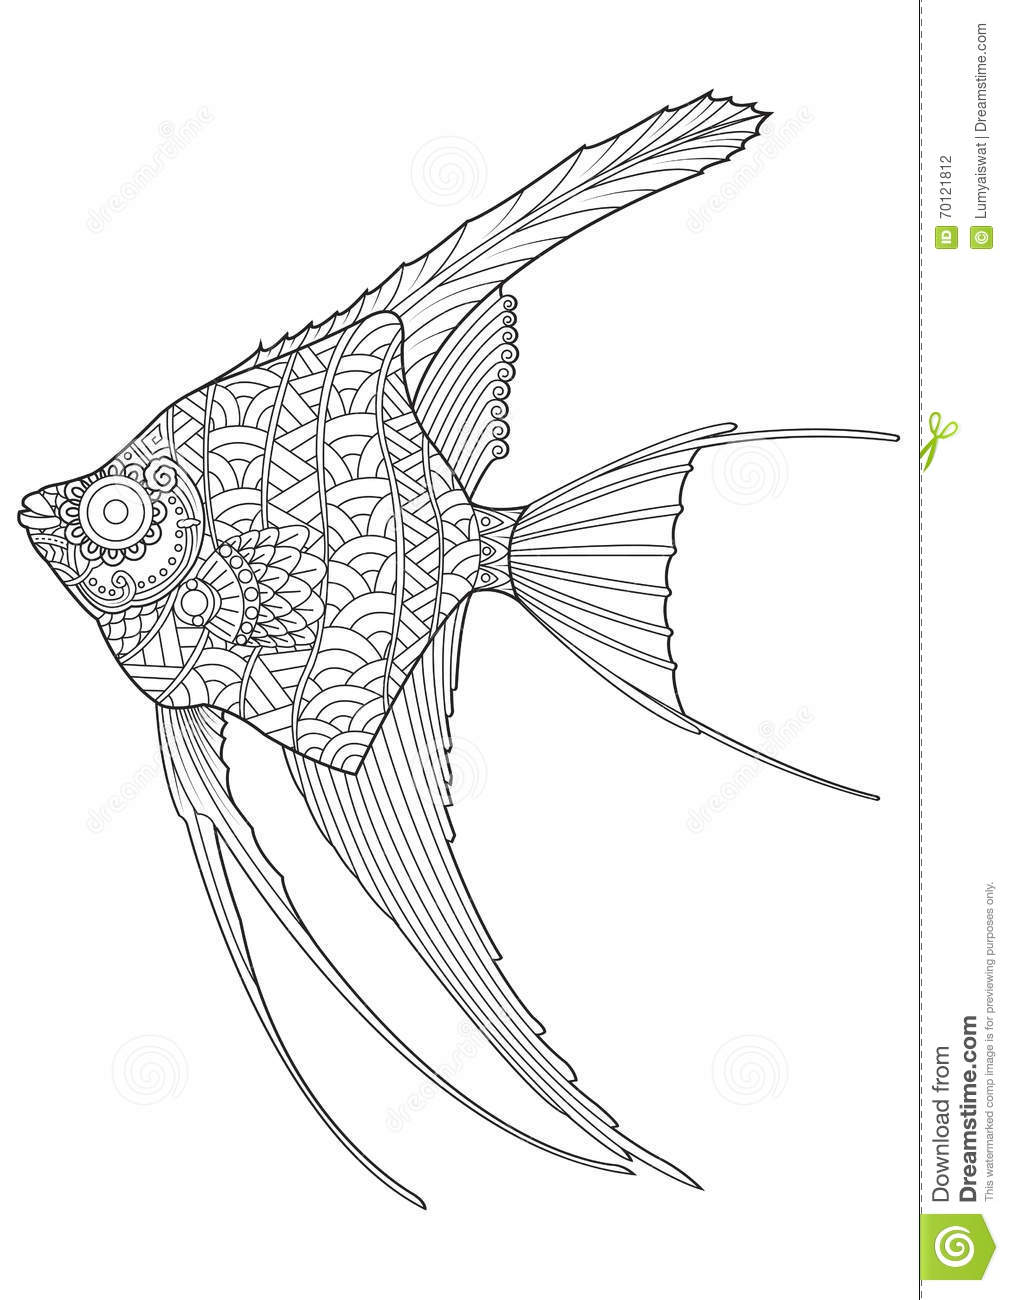 Hand Drawn Angel Fish Coloring Page Stock Vector ...